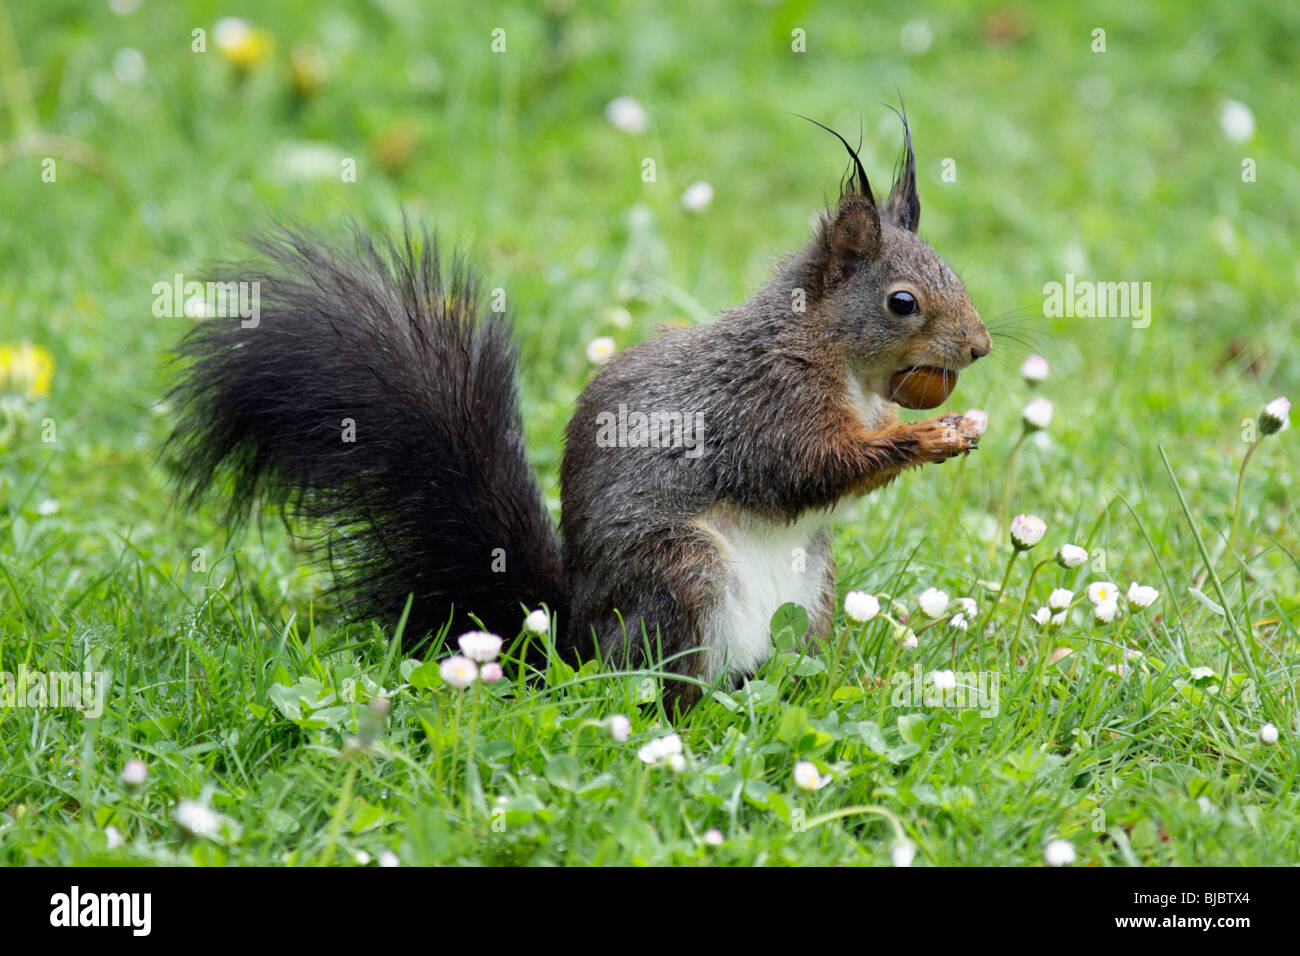 European Red Squirrel (Sciurus vulgaris), sitting on garden lawn, eating a hazelnut - Stock Image